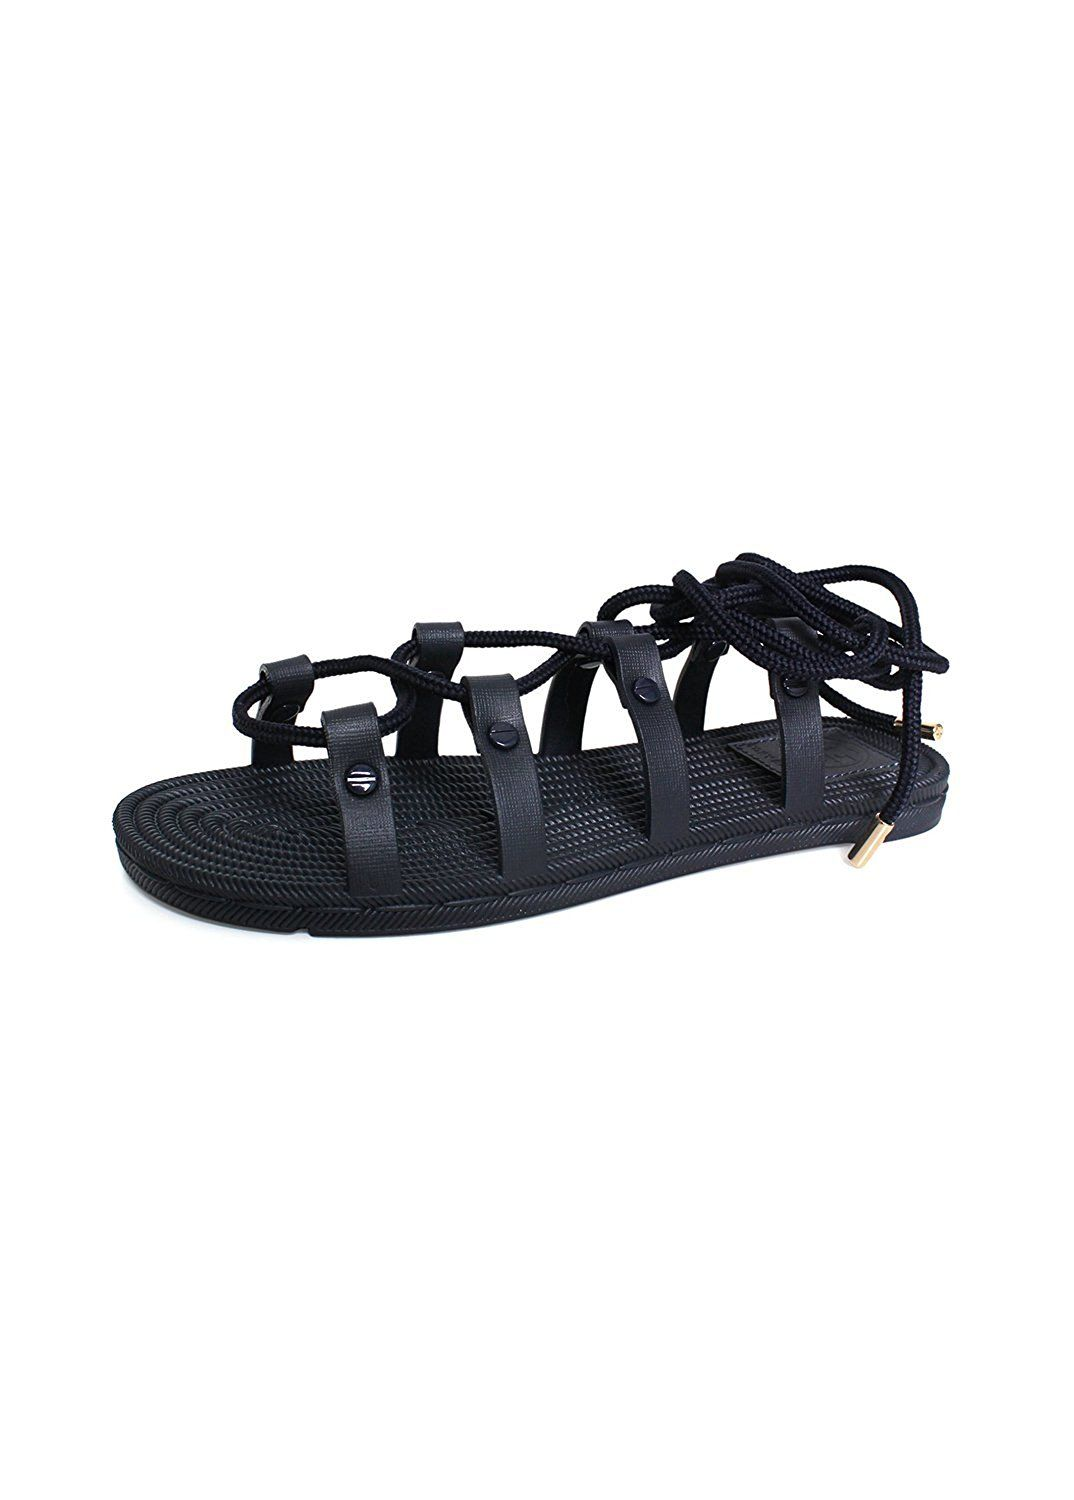 0231c69c41a8 Tory Burch TB Cord Lace-Up Strappy Rubber Sandal Tory Navy Blue Size 6 M      Remarkable outdoor item available now. - Strappy sandals